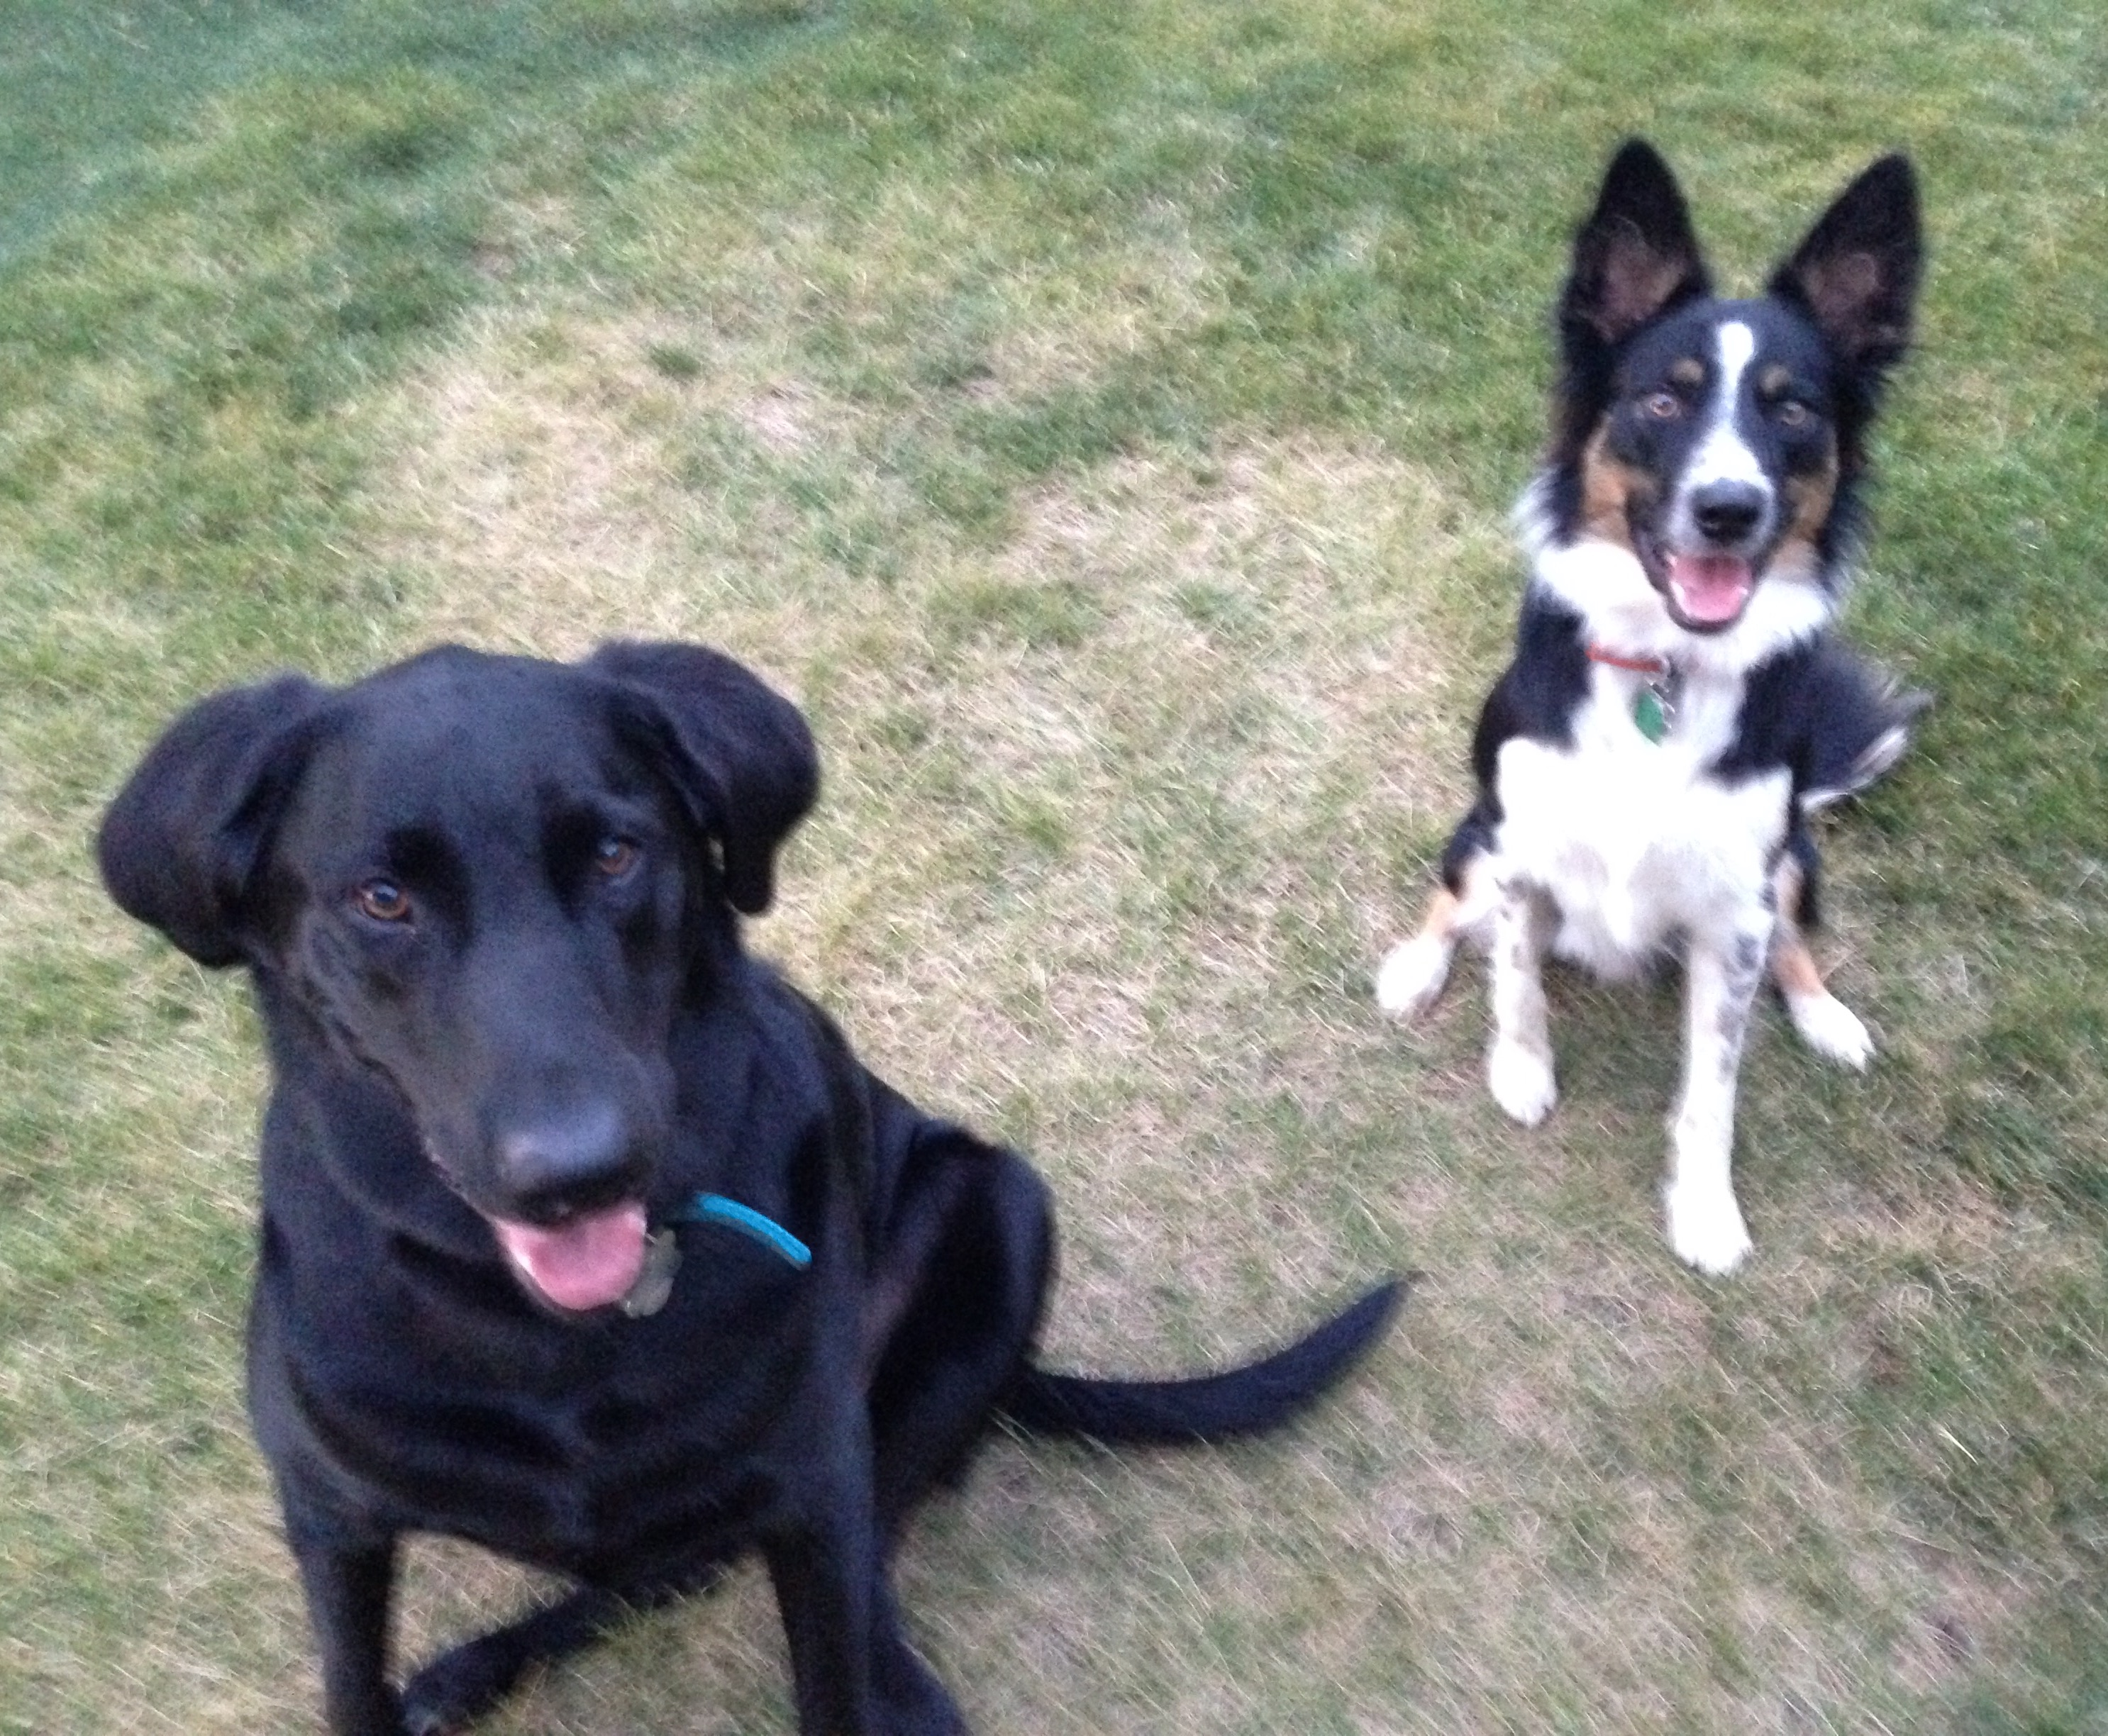 Rocky and Snickers are the perfect remedy to a hectic day. As soon as I walk in the door, they're waiting there with a rawhide and a smile!